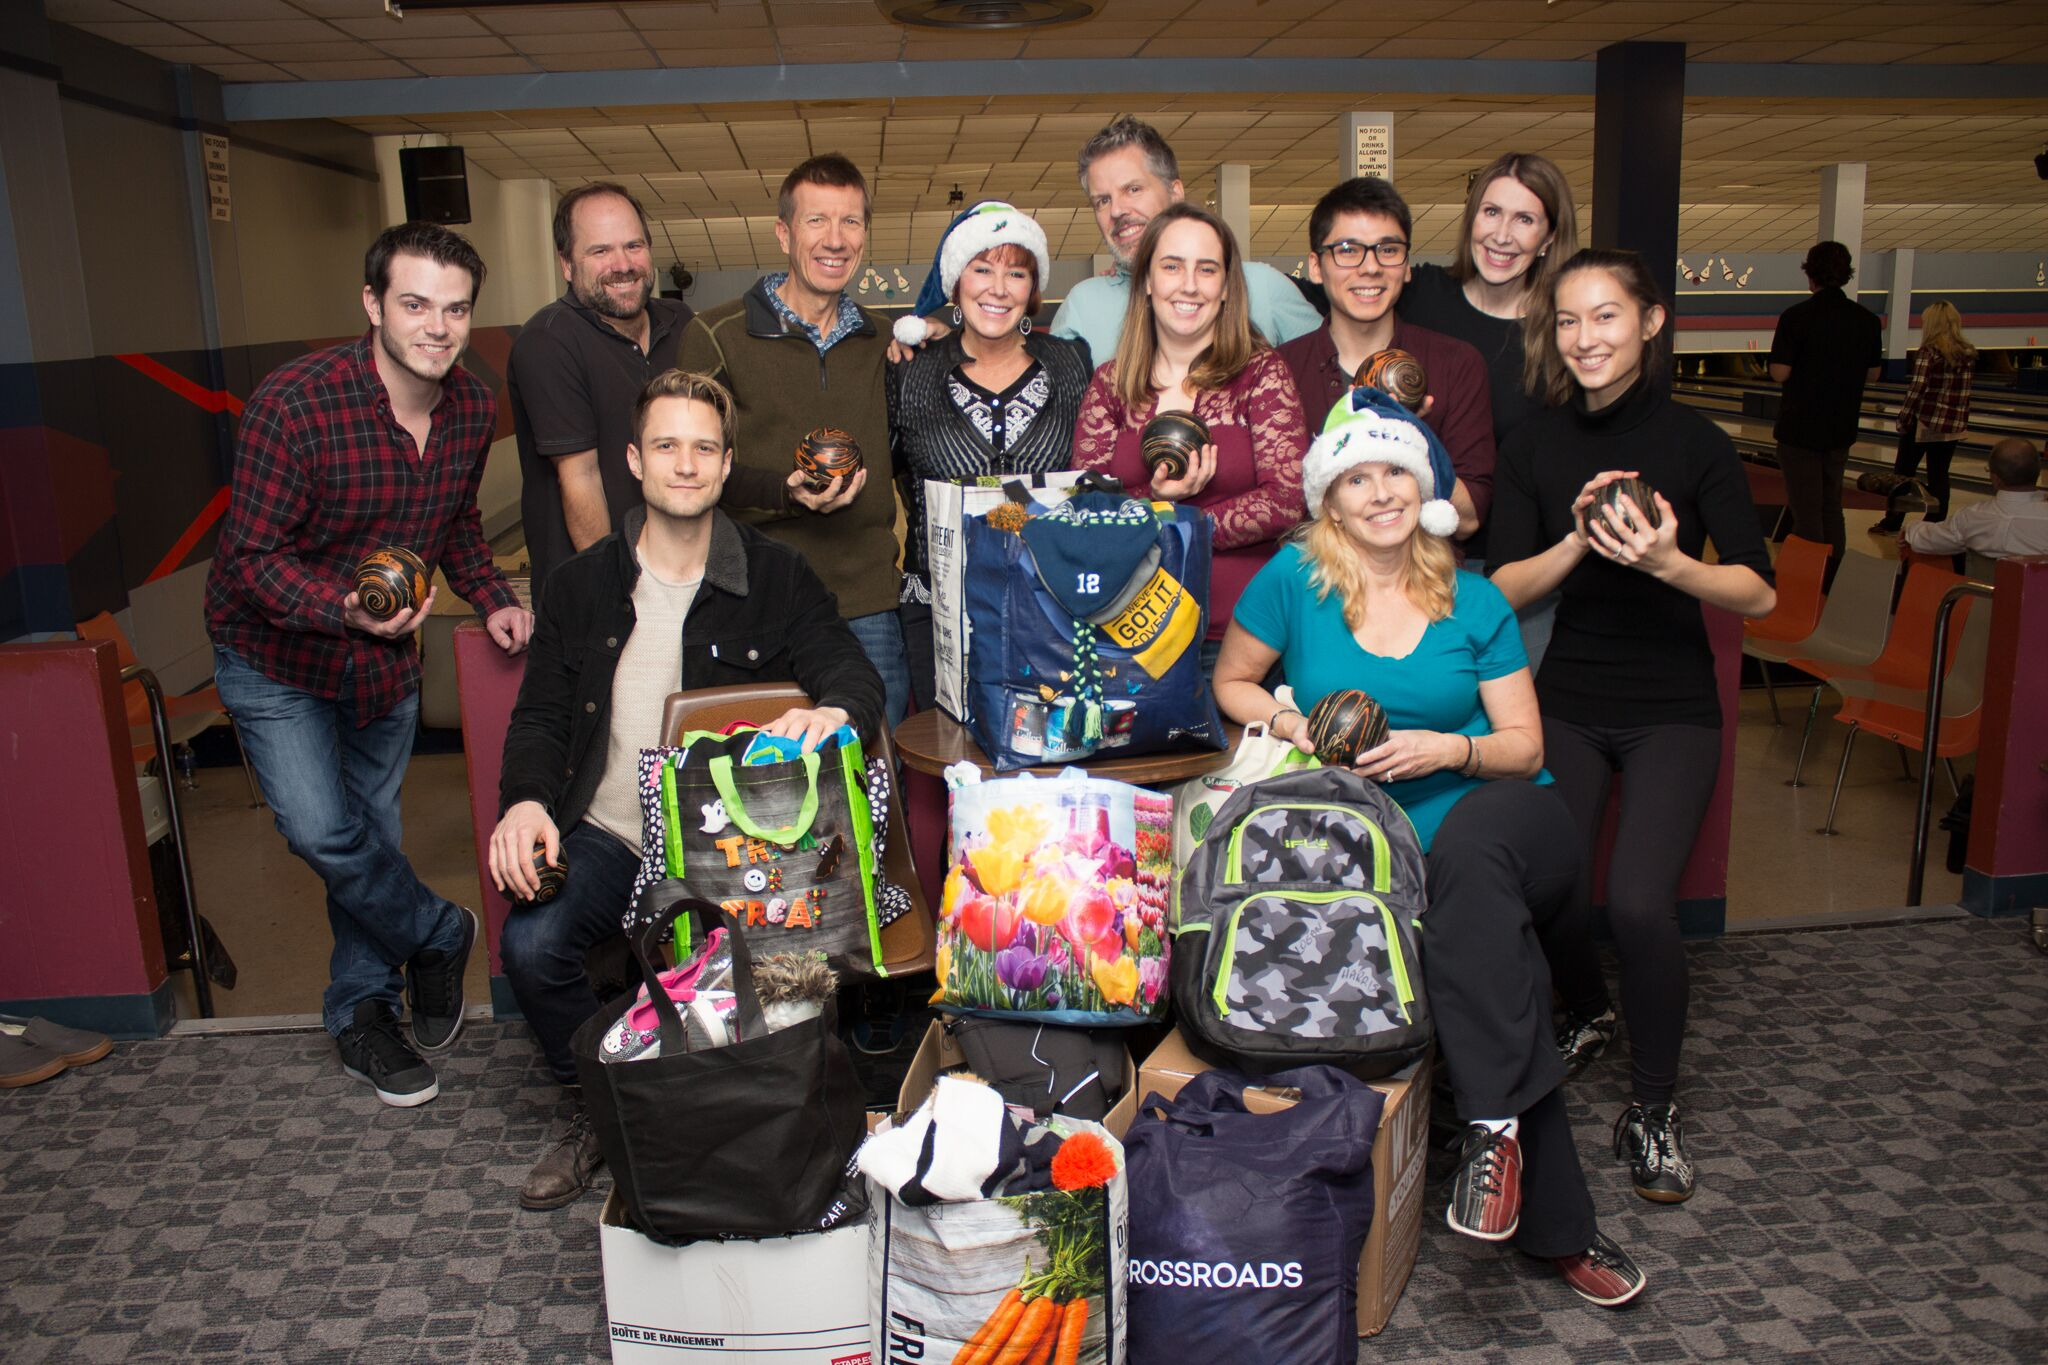 Our B.C. team joined together for a holiday celebration and collected 14 boxes/bags full of necessities and gifts to donate to Covenant House in Vancouver supporting homeless and at-risk youth.